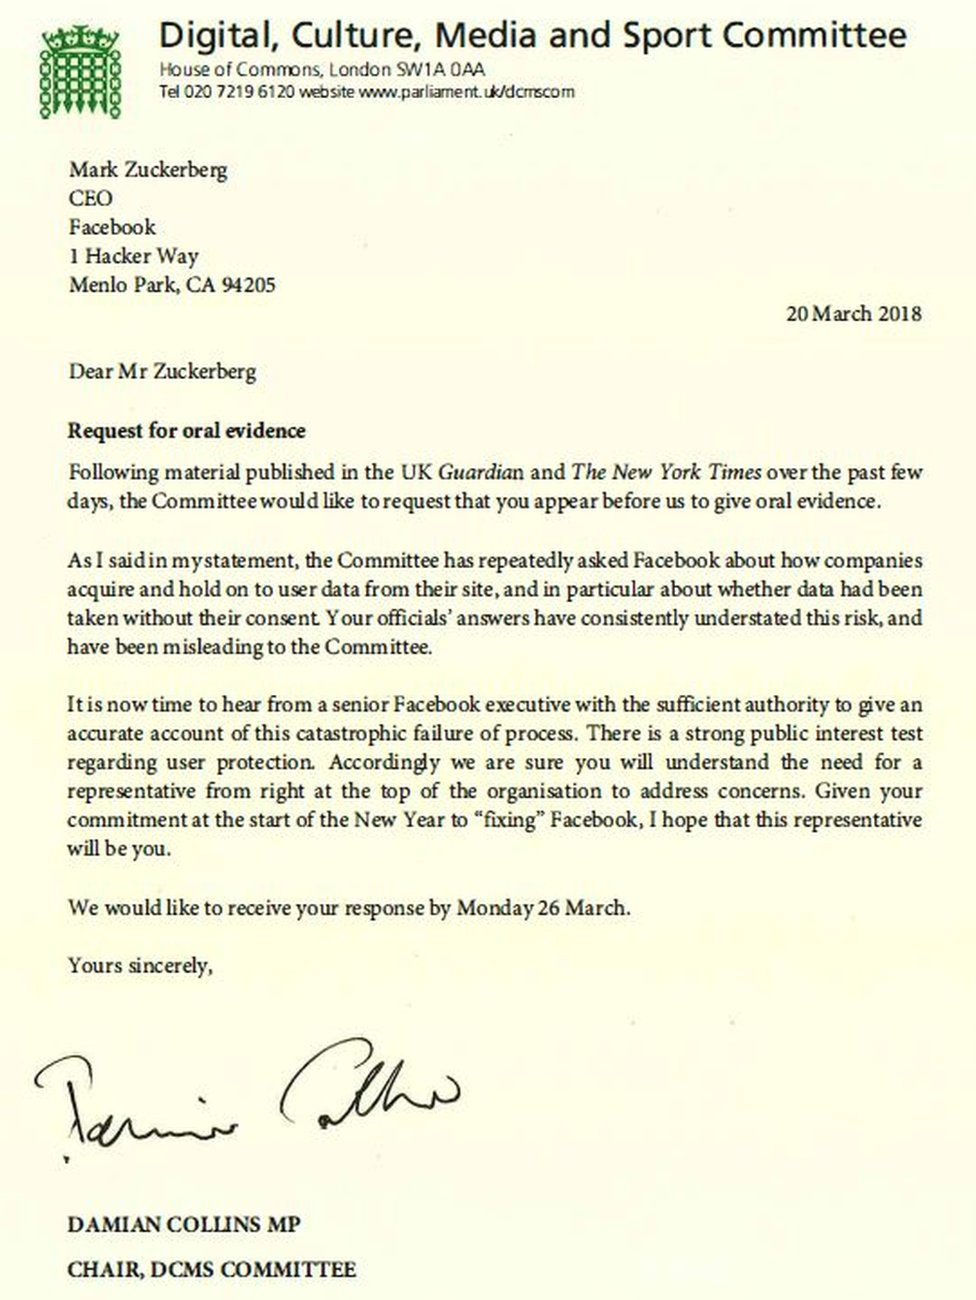 Letter from Damian Collins to Mark Zuckerberg